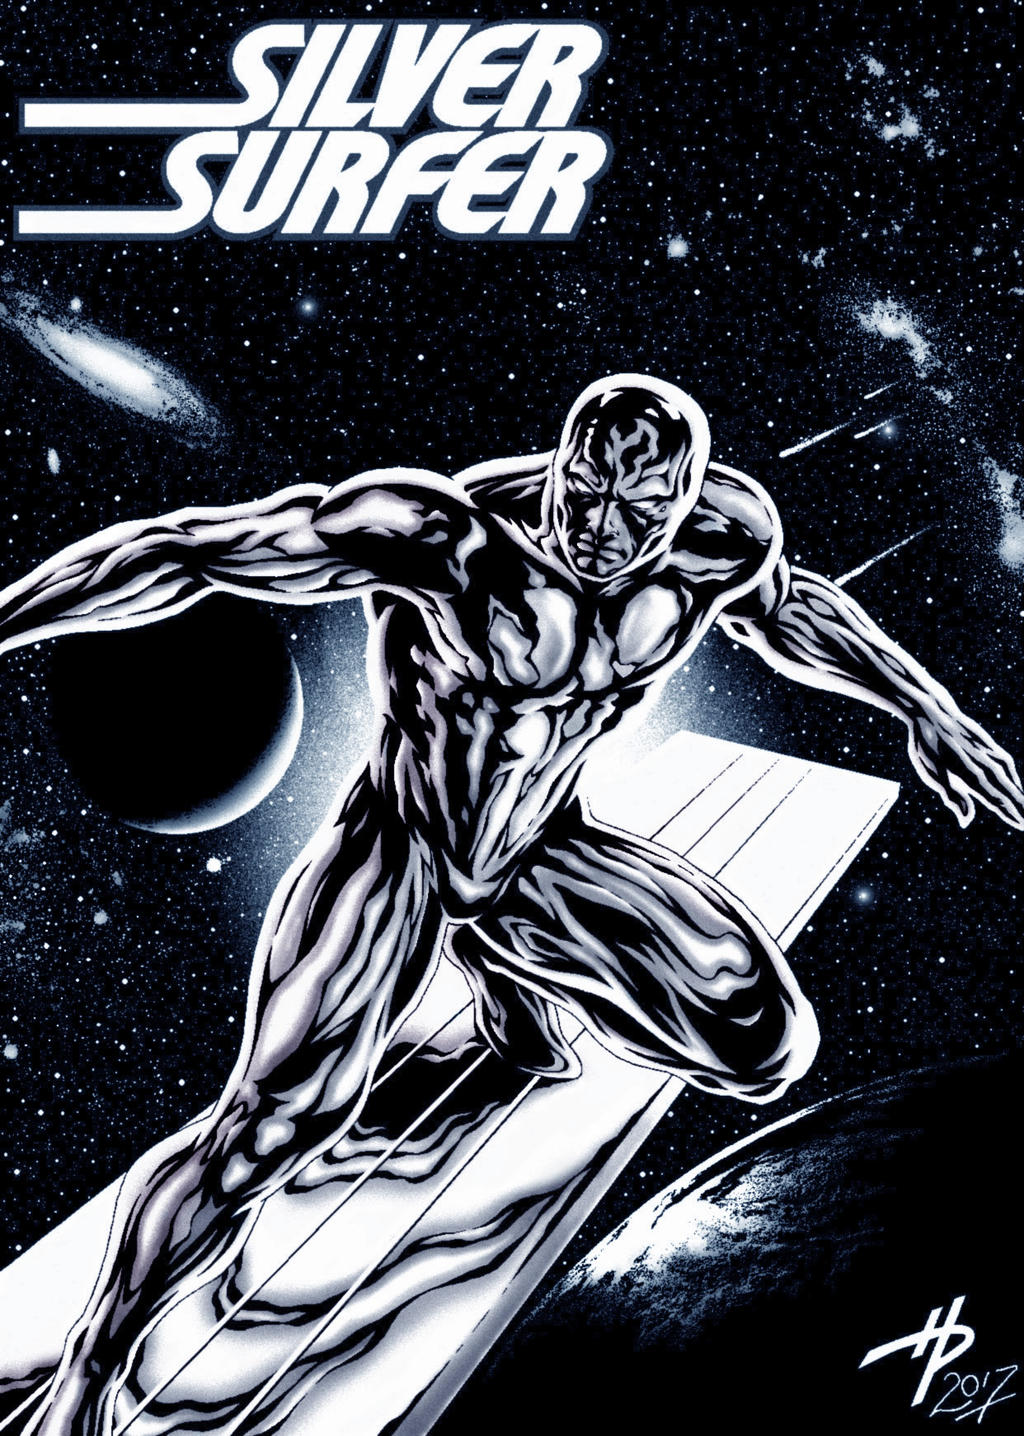 jack kirbys the silver surfer colored by hal2012 on